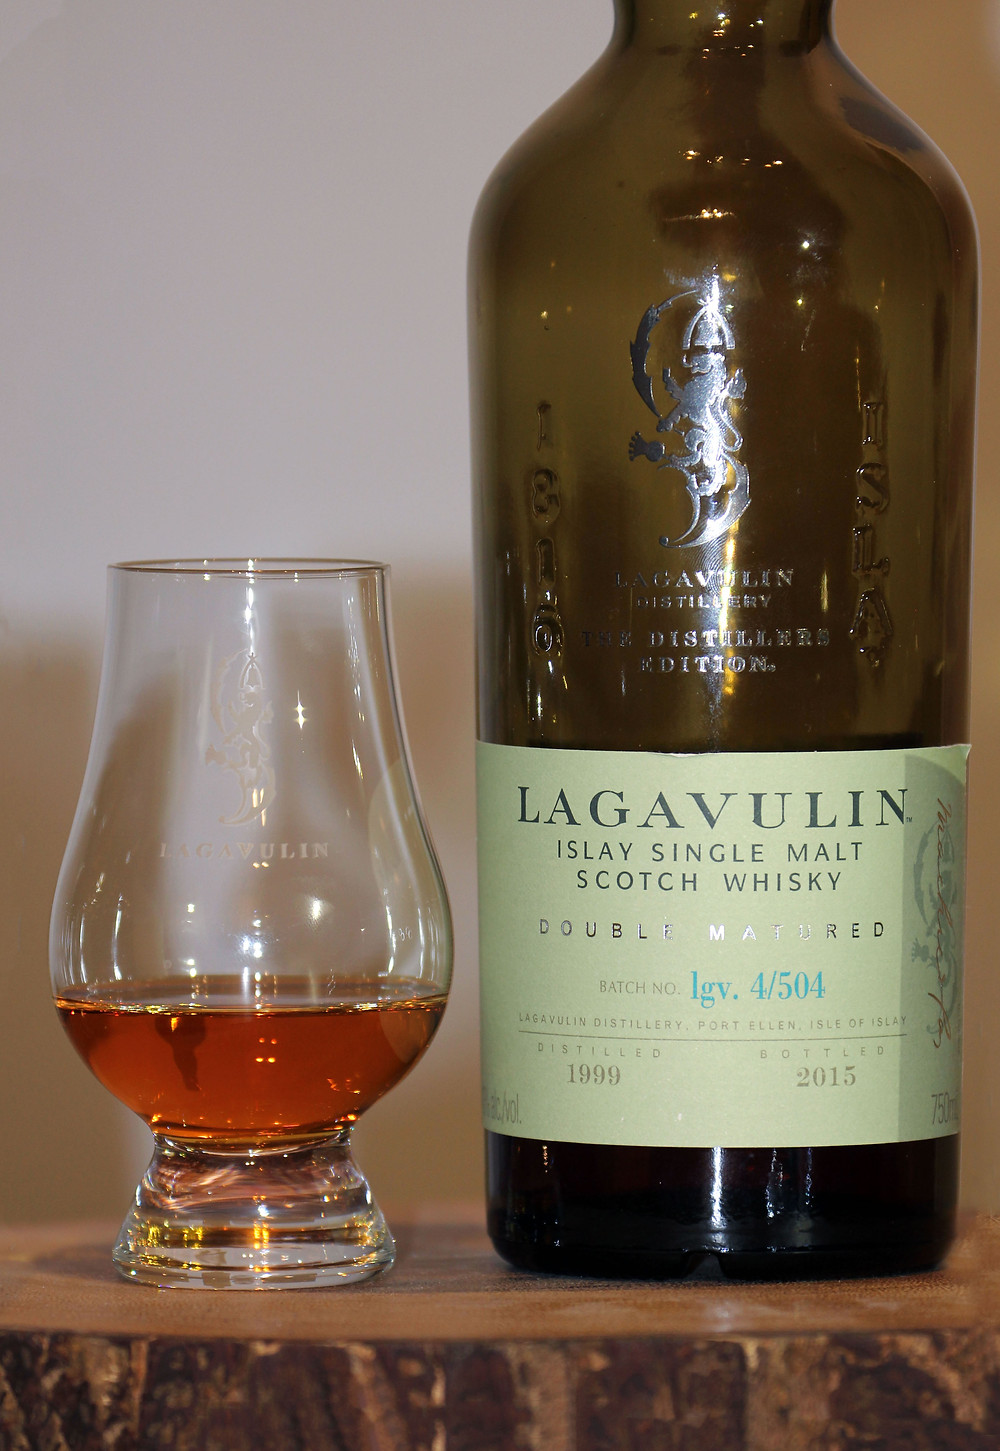 A bottle of Lagavulin Distillers Edition on a wooden trivet with a Glencairn glass of amber colored whiskey